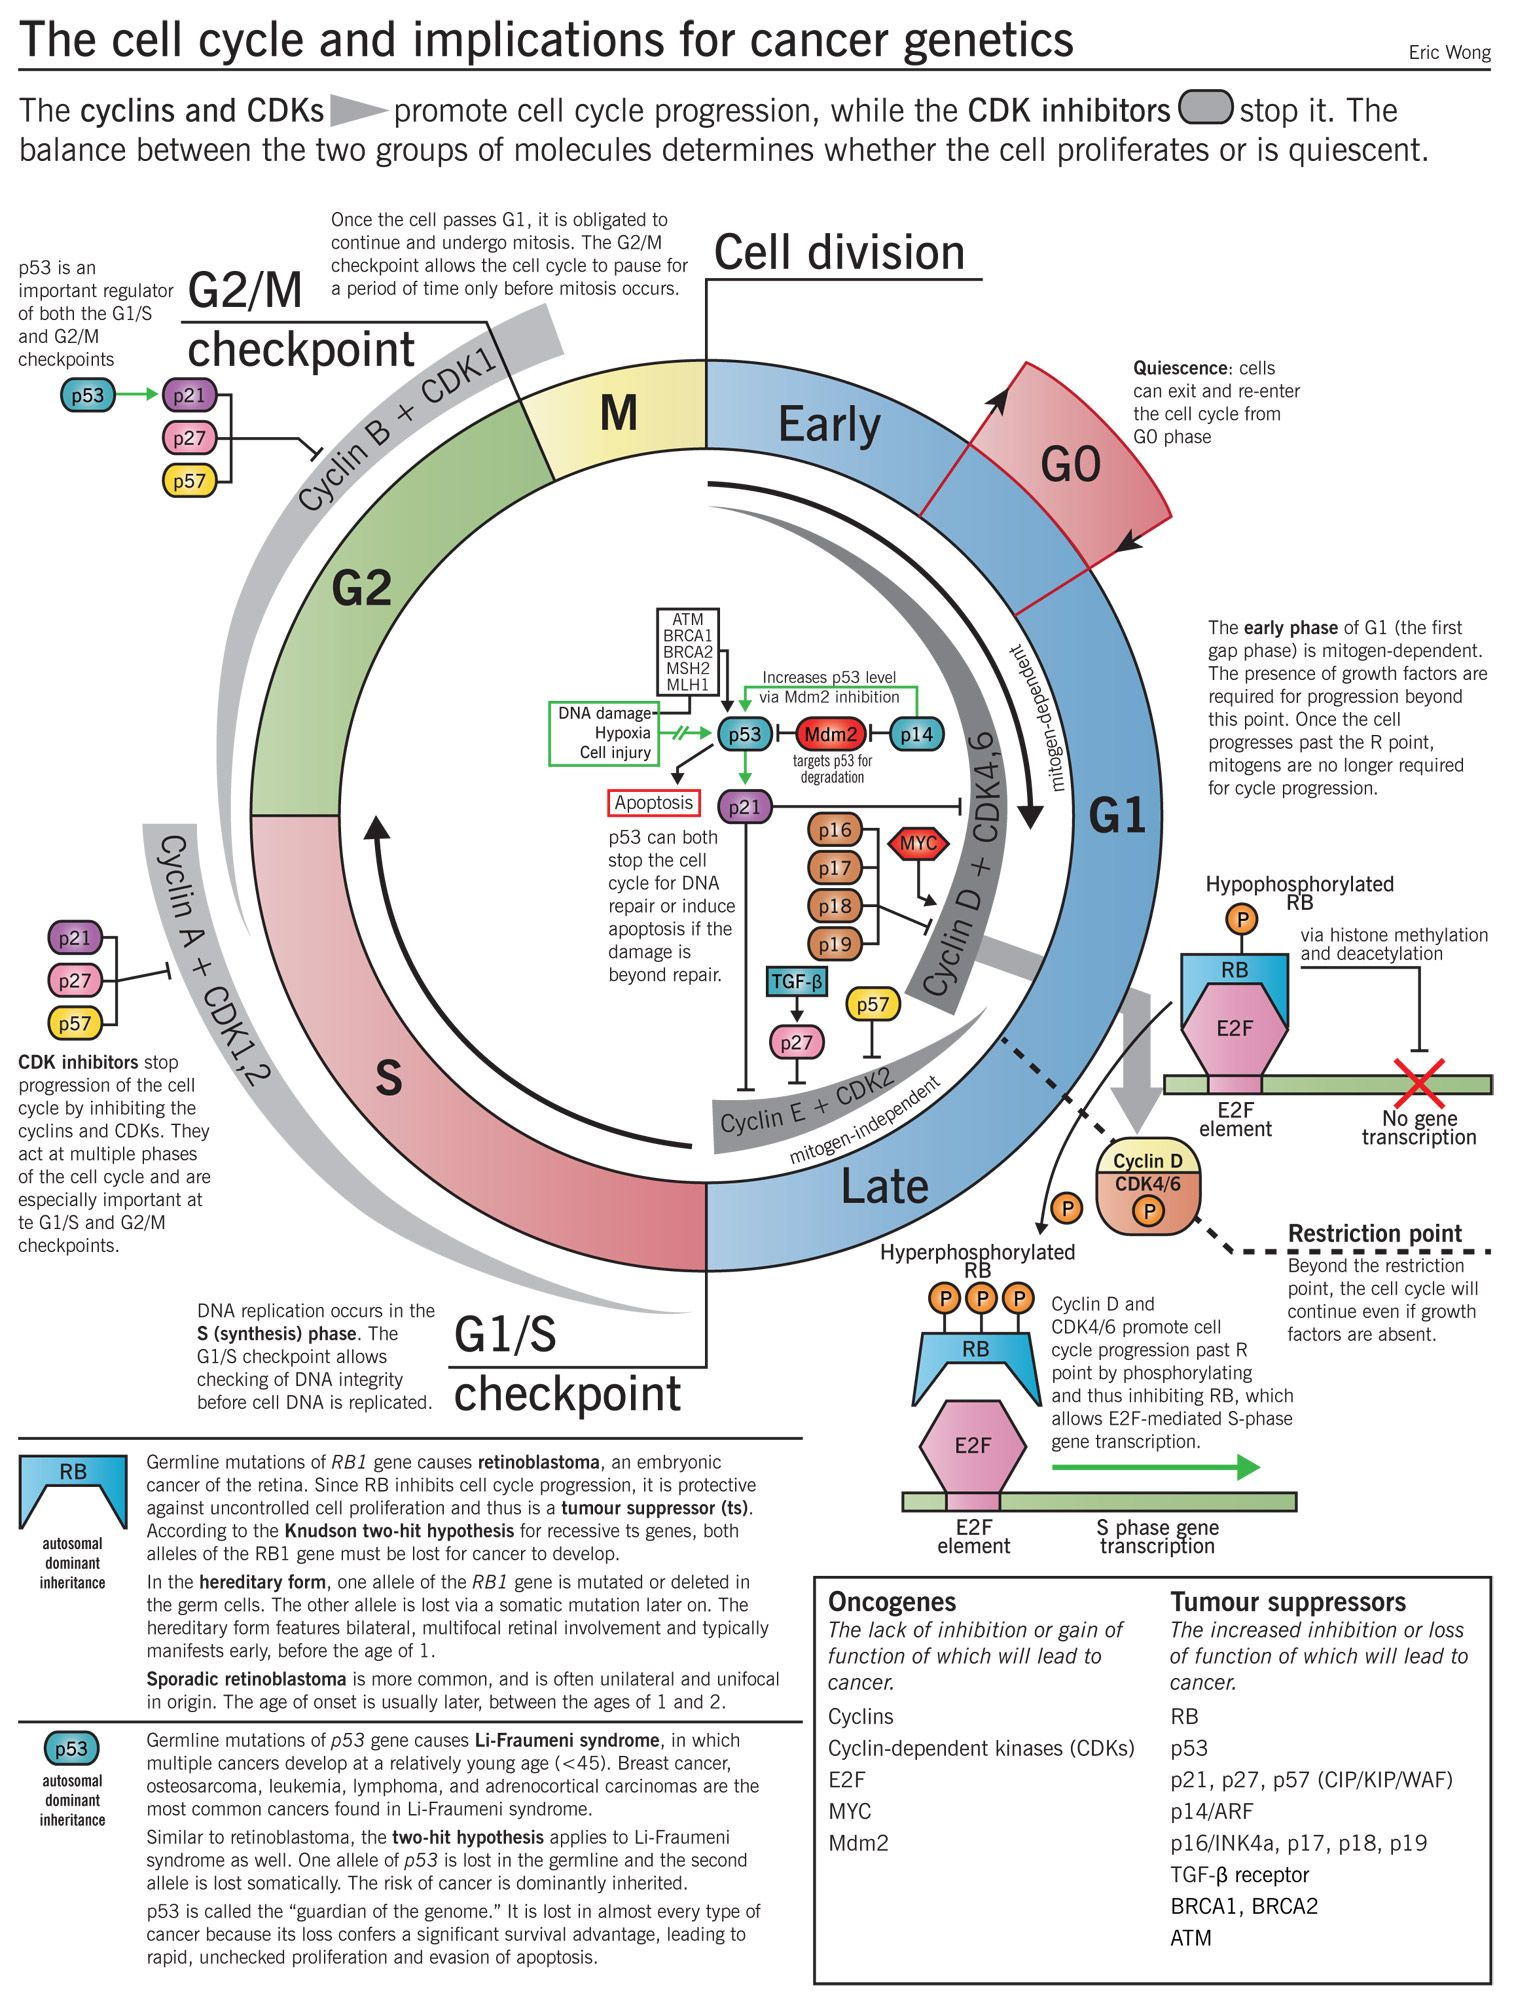 When Does Dna Replication Occur In The Cell Cycle